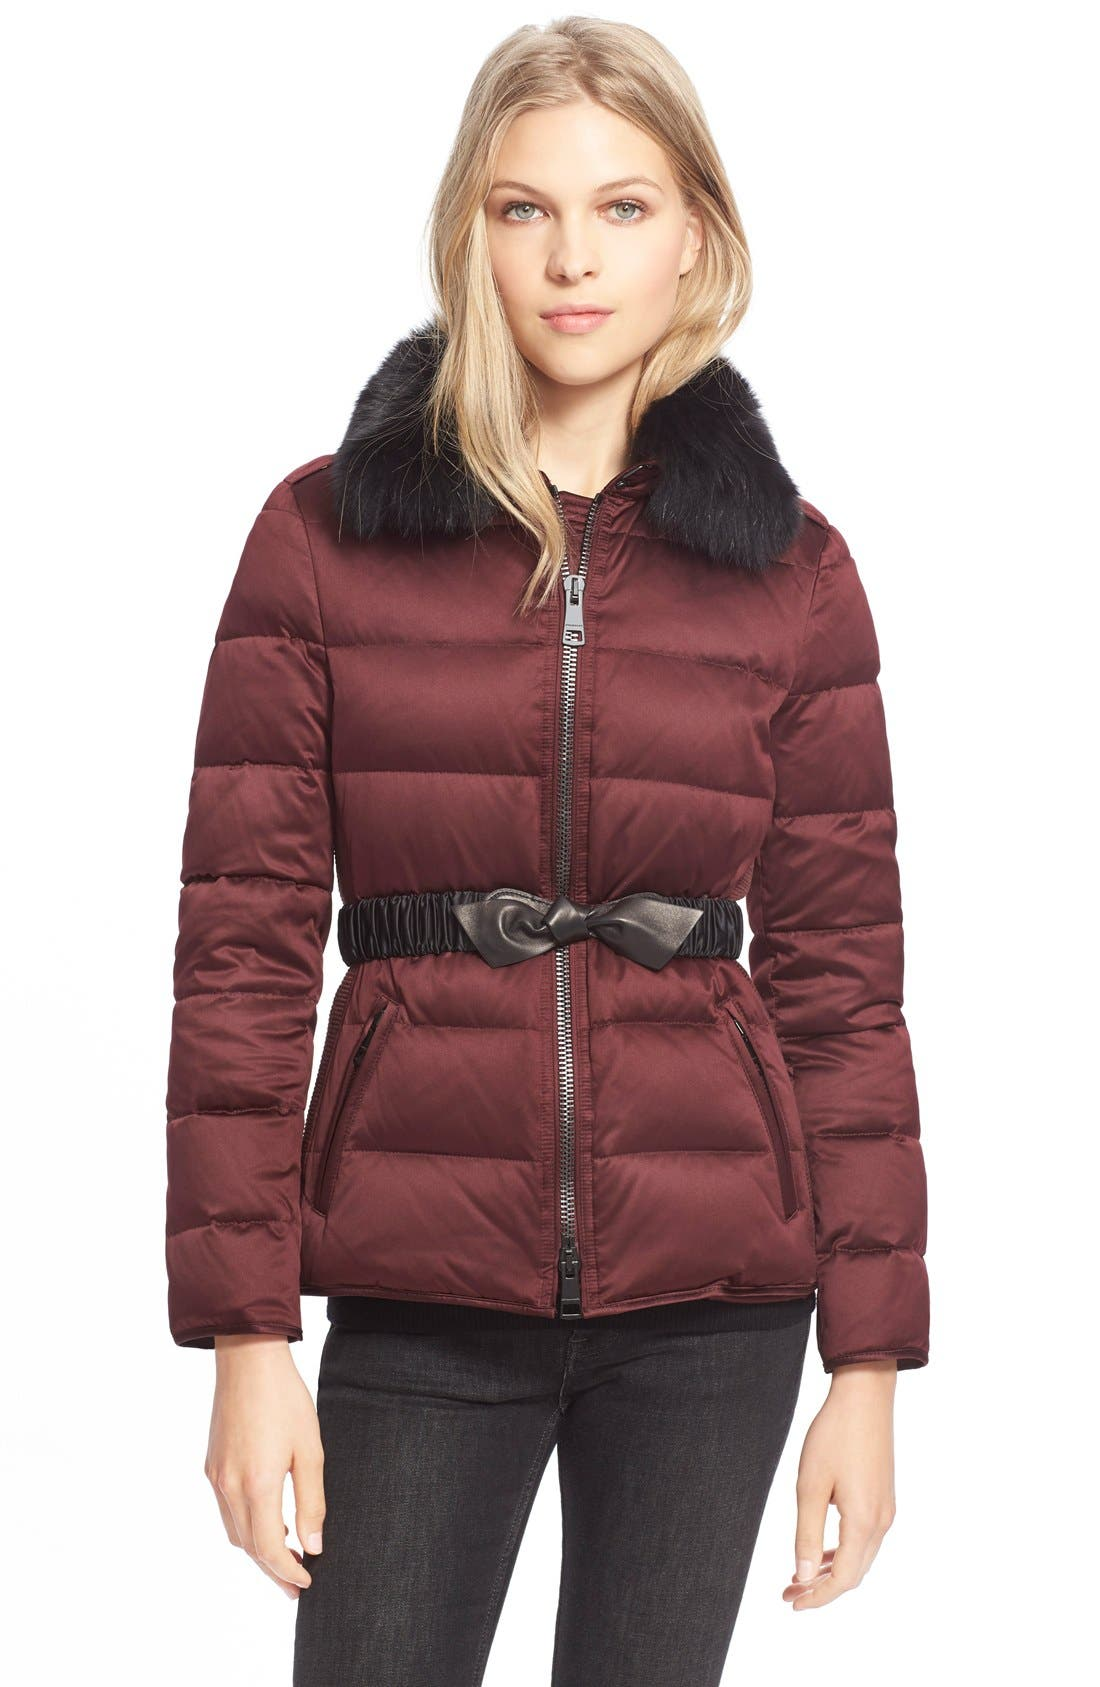 Alternate Image 1 Selected - BurberryBrit Belted Down Jacket withGenuineFoxFurCollar